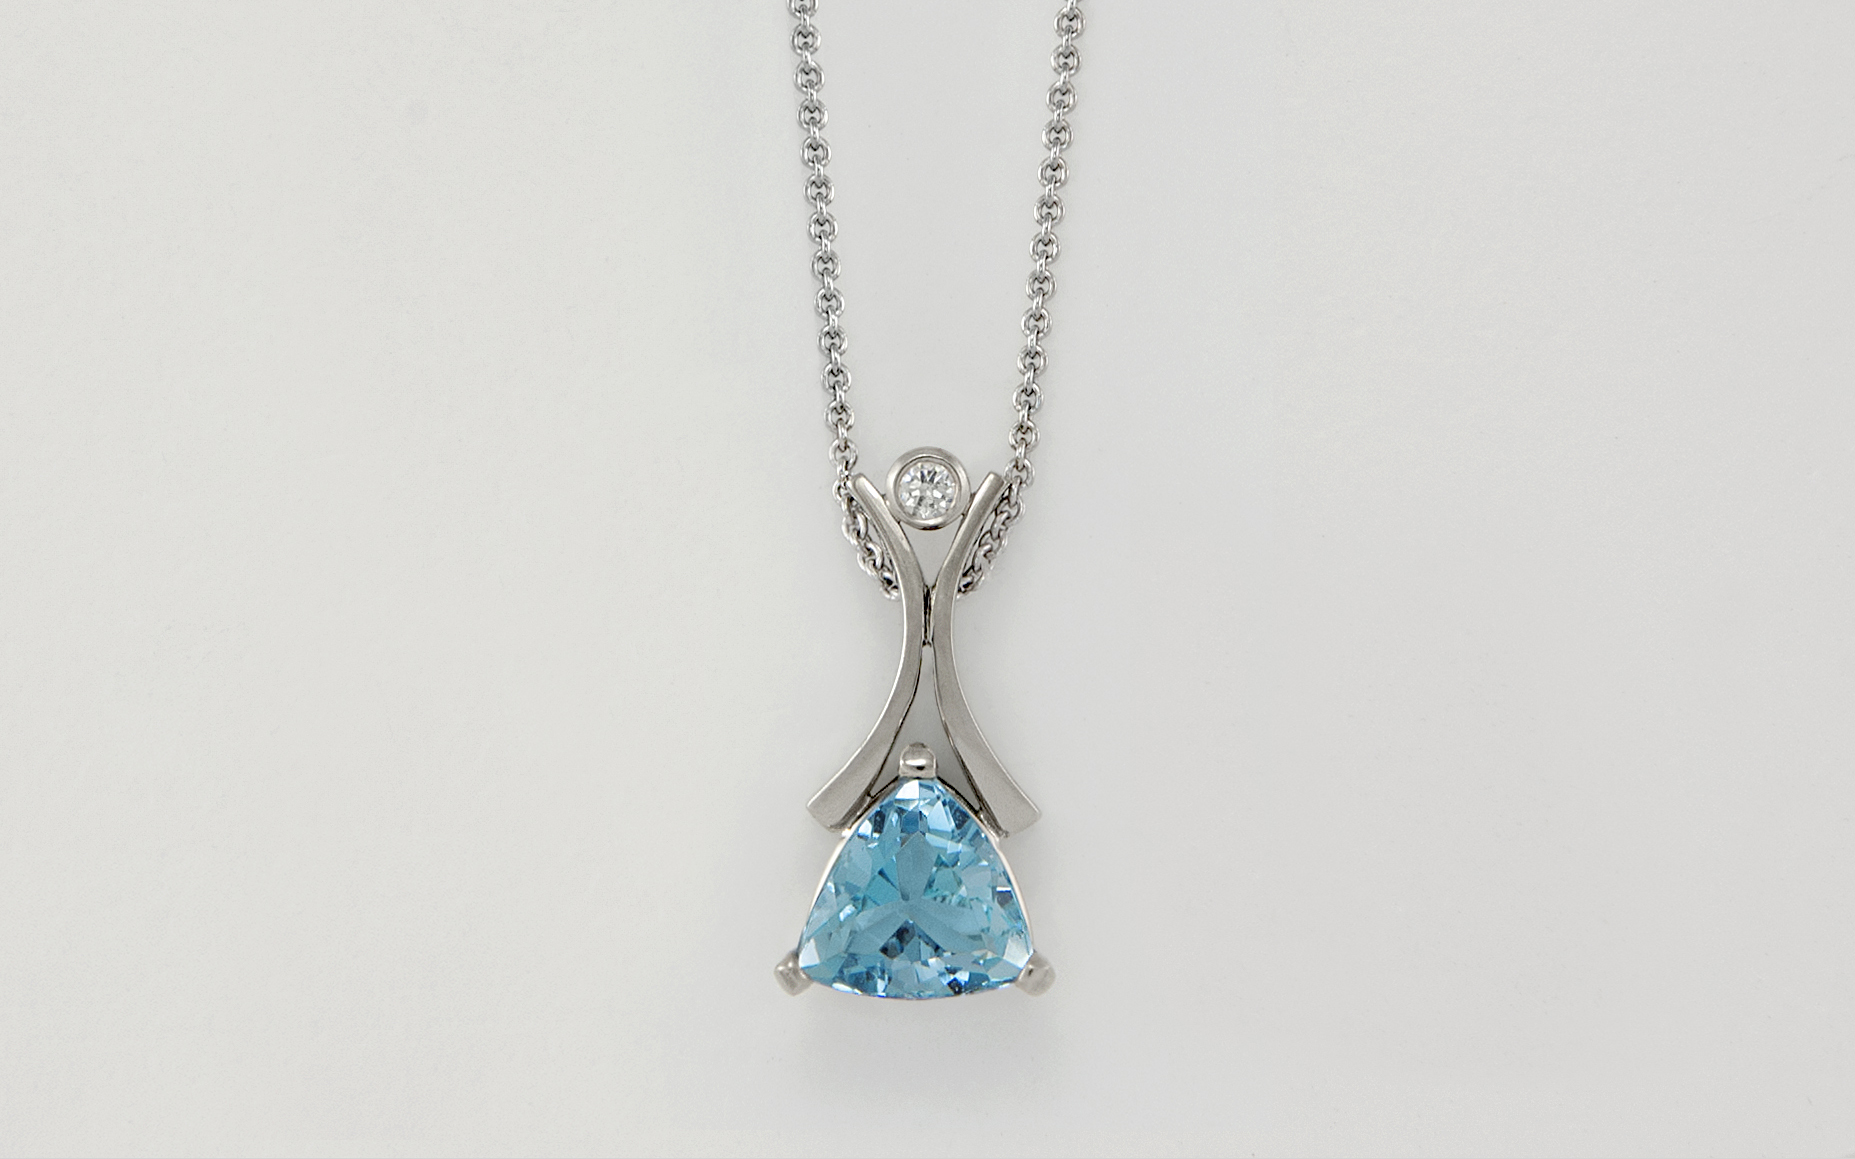 Trillion Cut Aquamarine Pendant